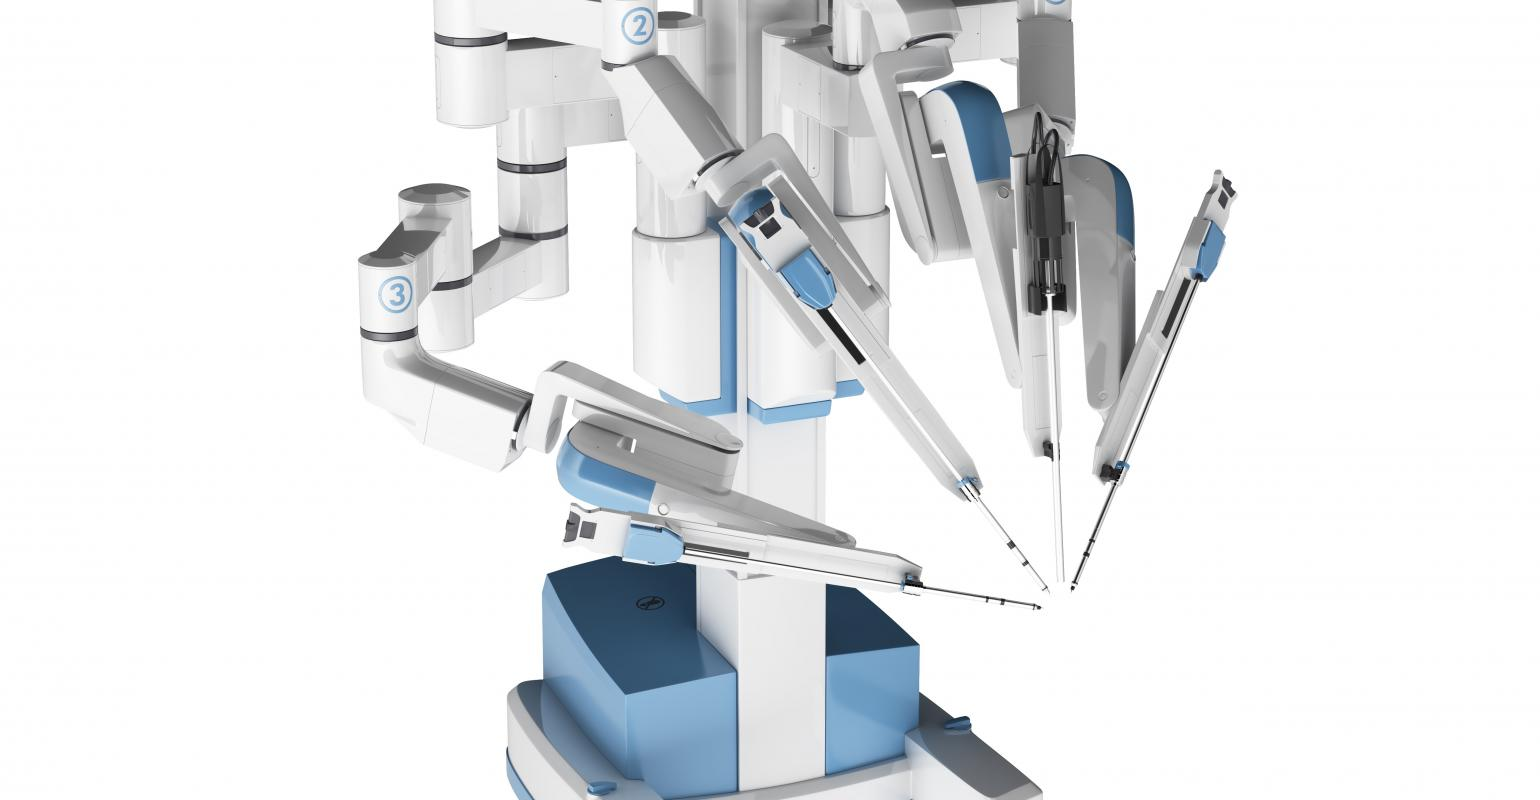 A Look at Specialty Polymers for Surgical Robots | mddionline.com